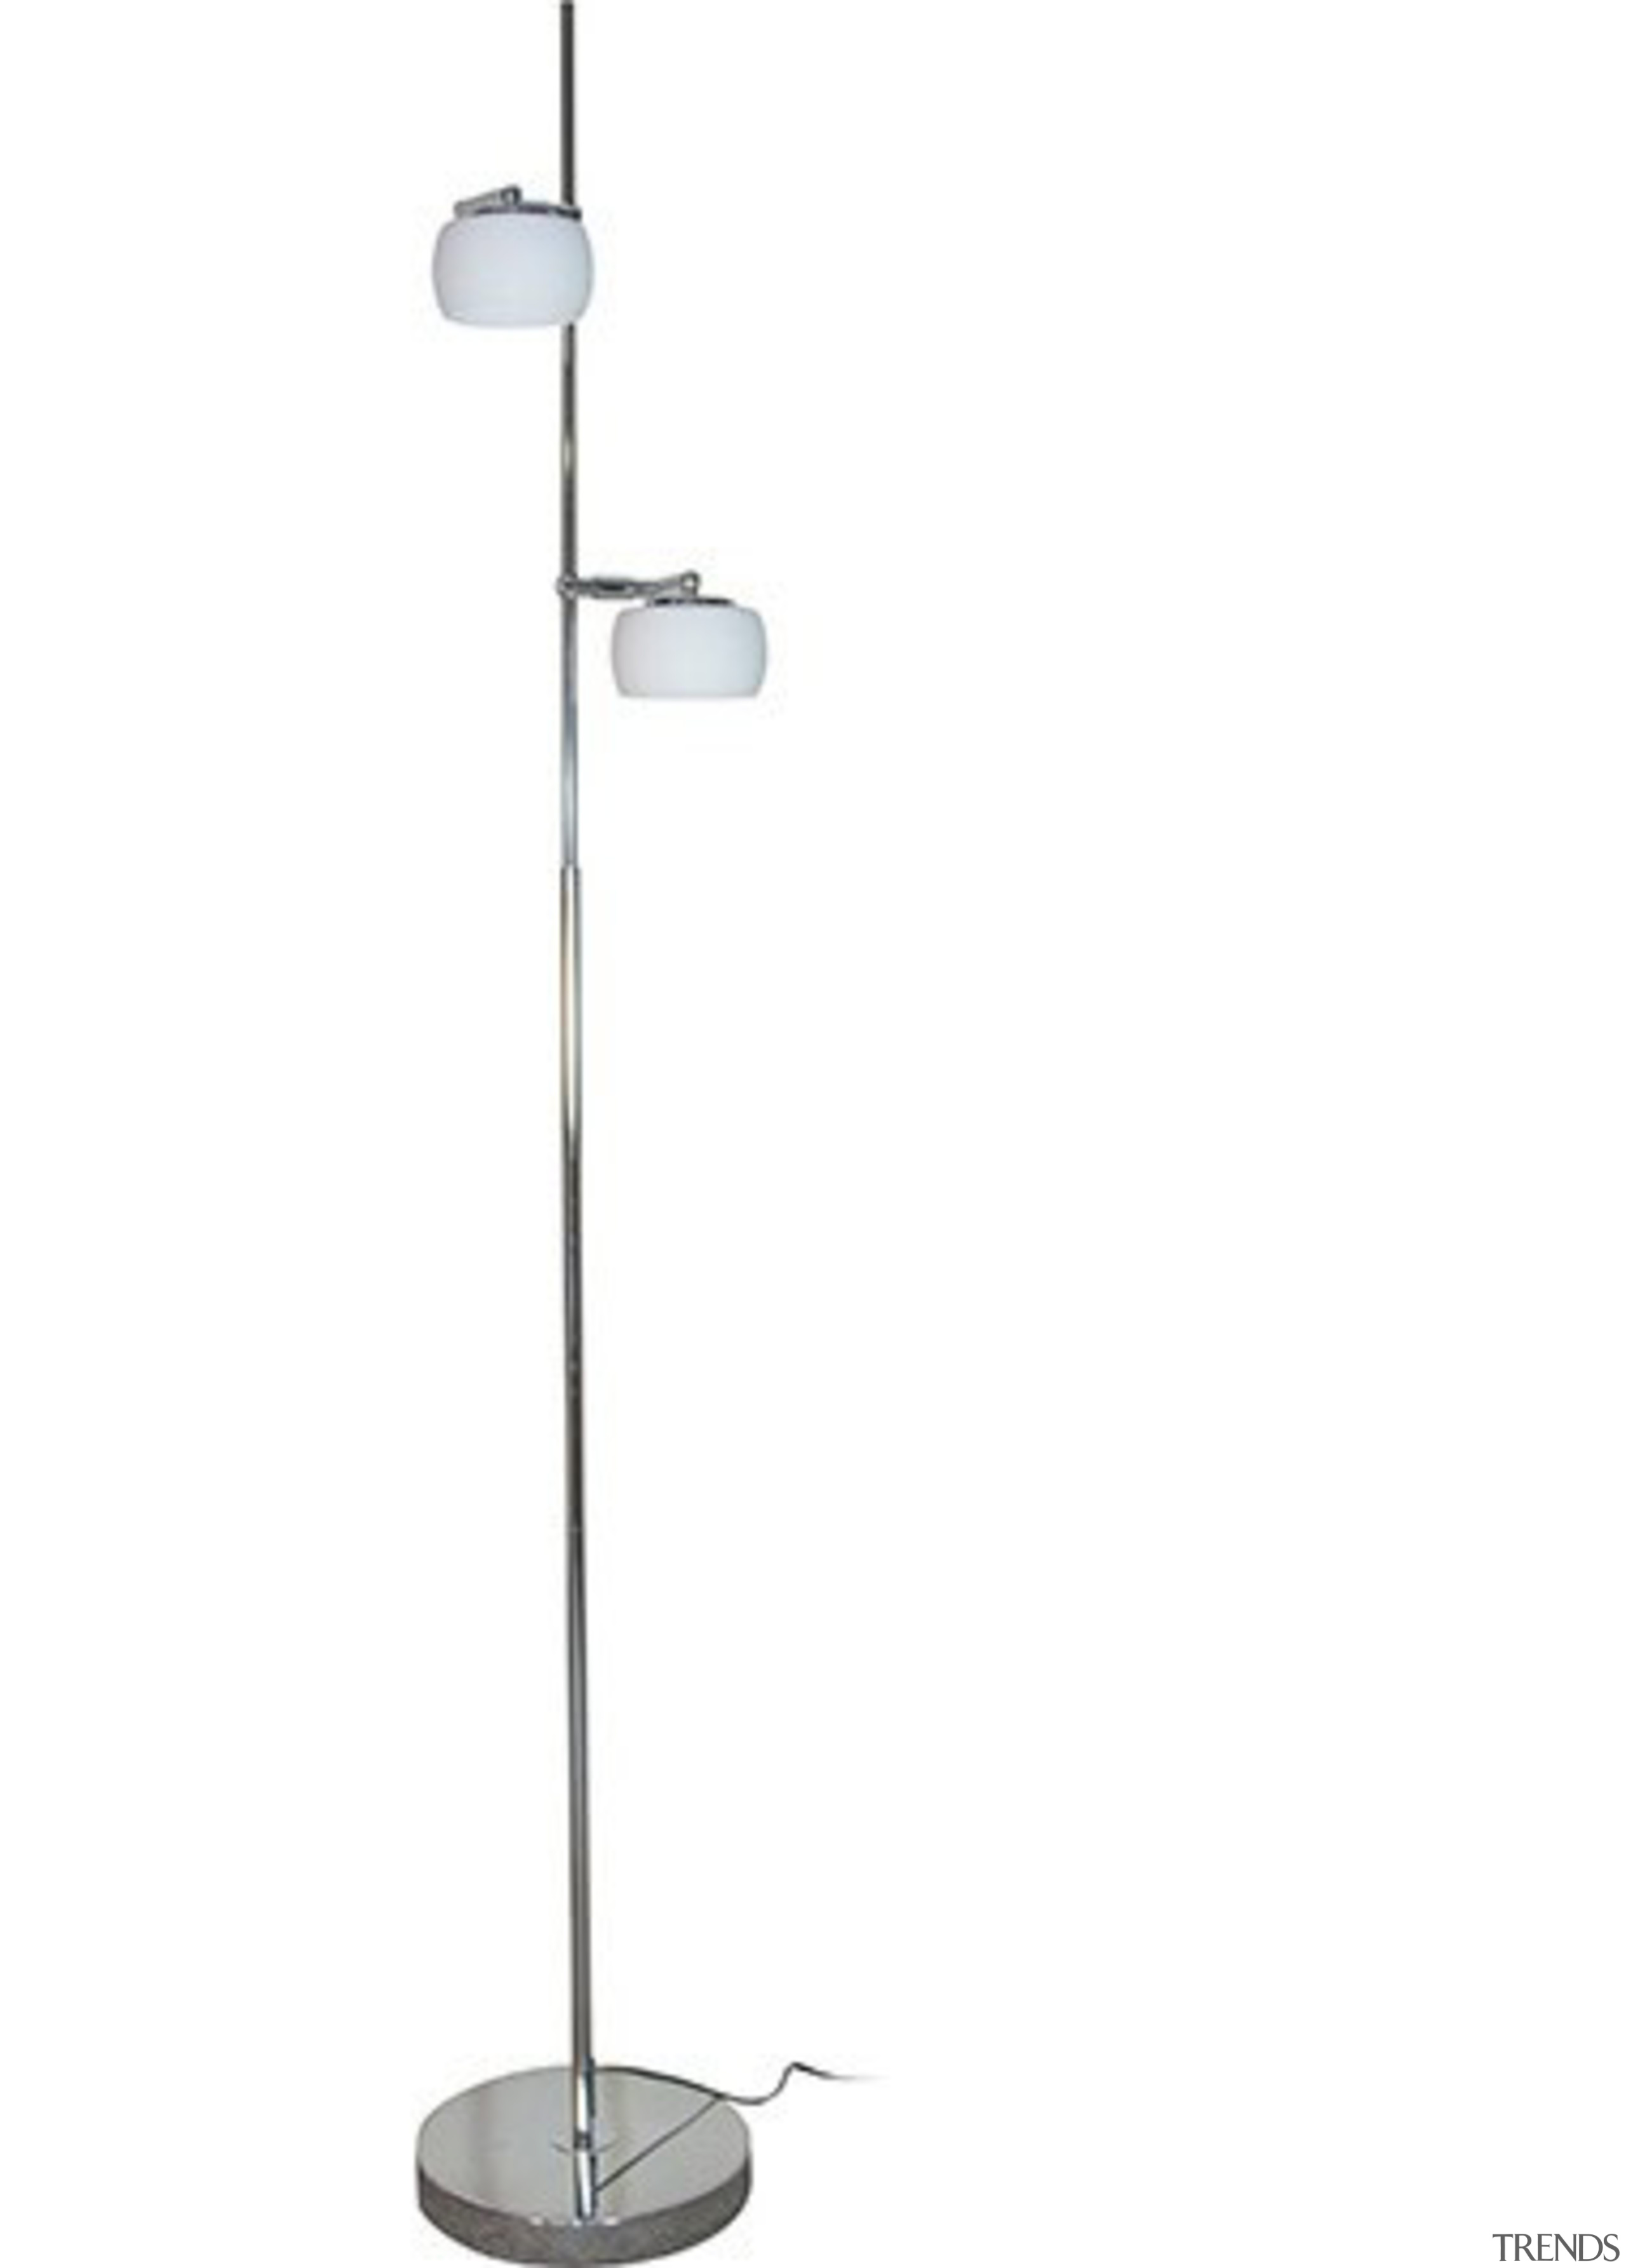 FeaturesThe Elly LED floor lamp is a stylish light fixture, lighting, product design, white